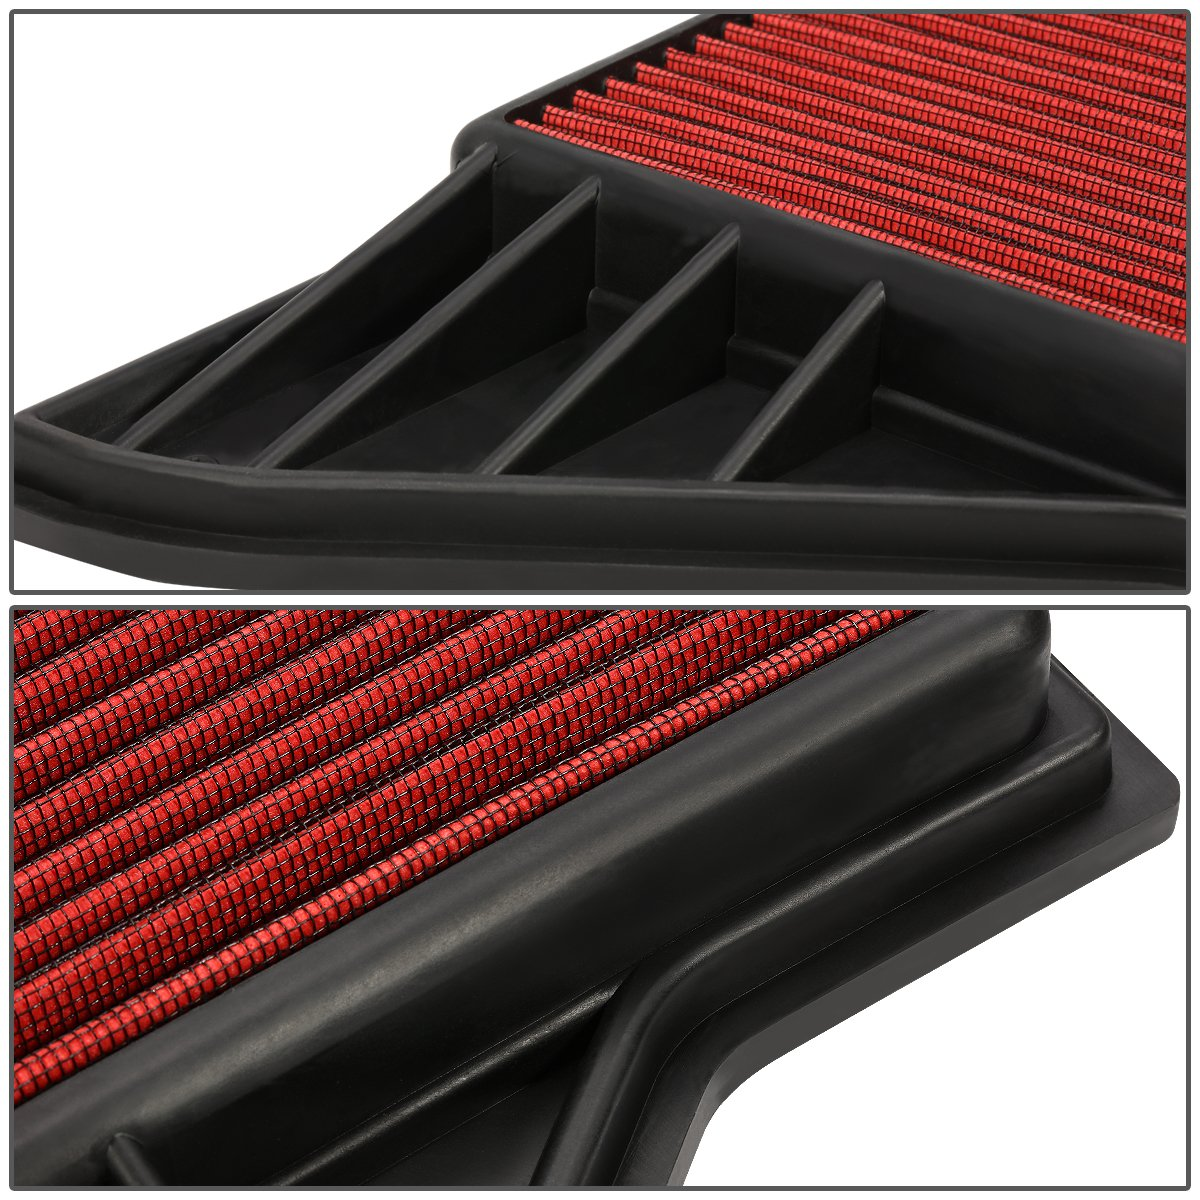 DNA Motoring AFPN-075-RD Drop In Panel Air Filter For 10-14 Ford Mustang 3.7L 4.6L 5.0L